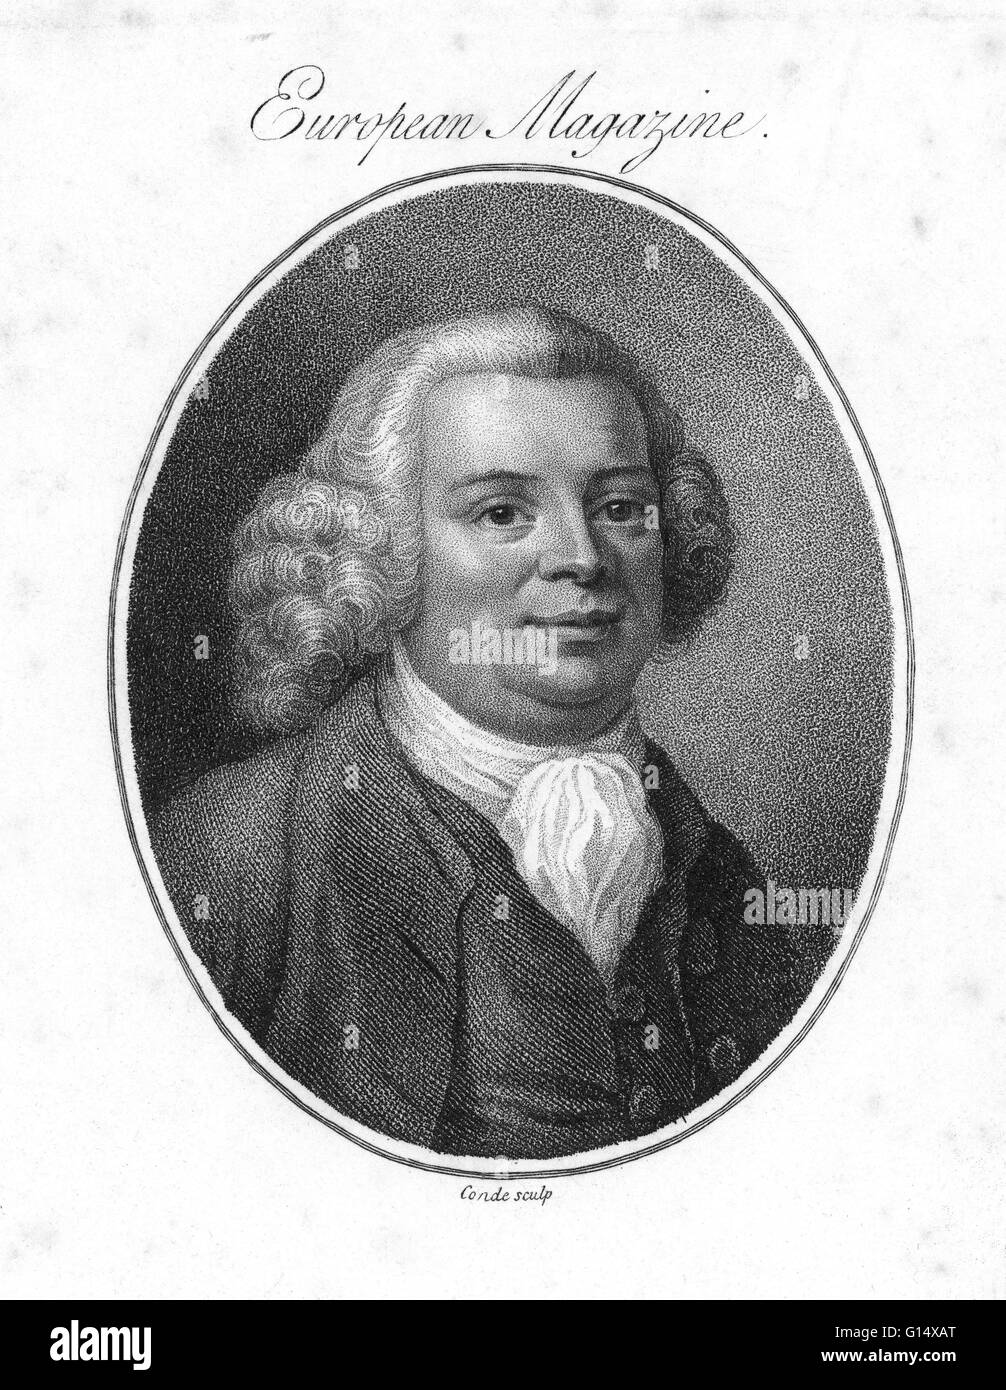 James Brindley (1716 - September 27, 1772) was an English engineer. He received little formal education but was - Stock Image